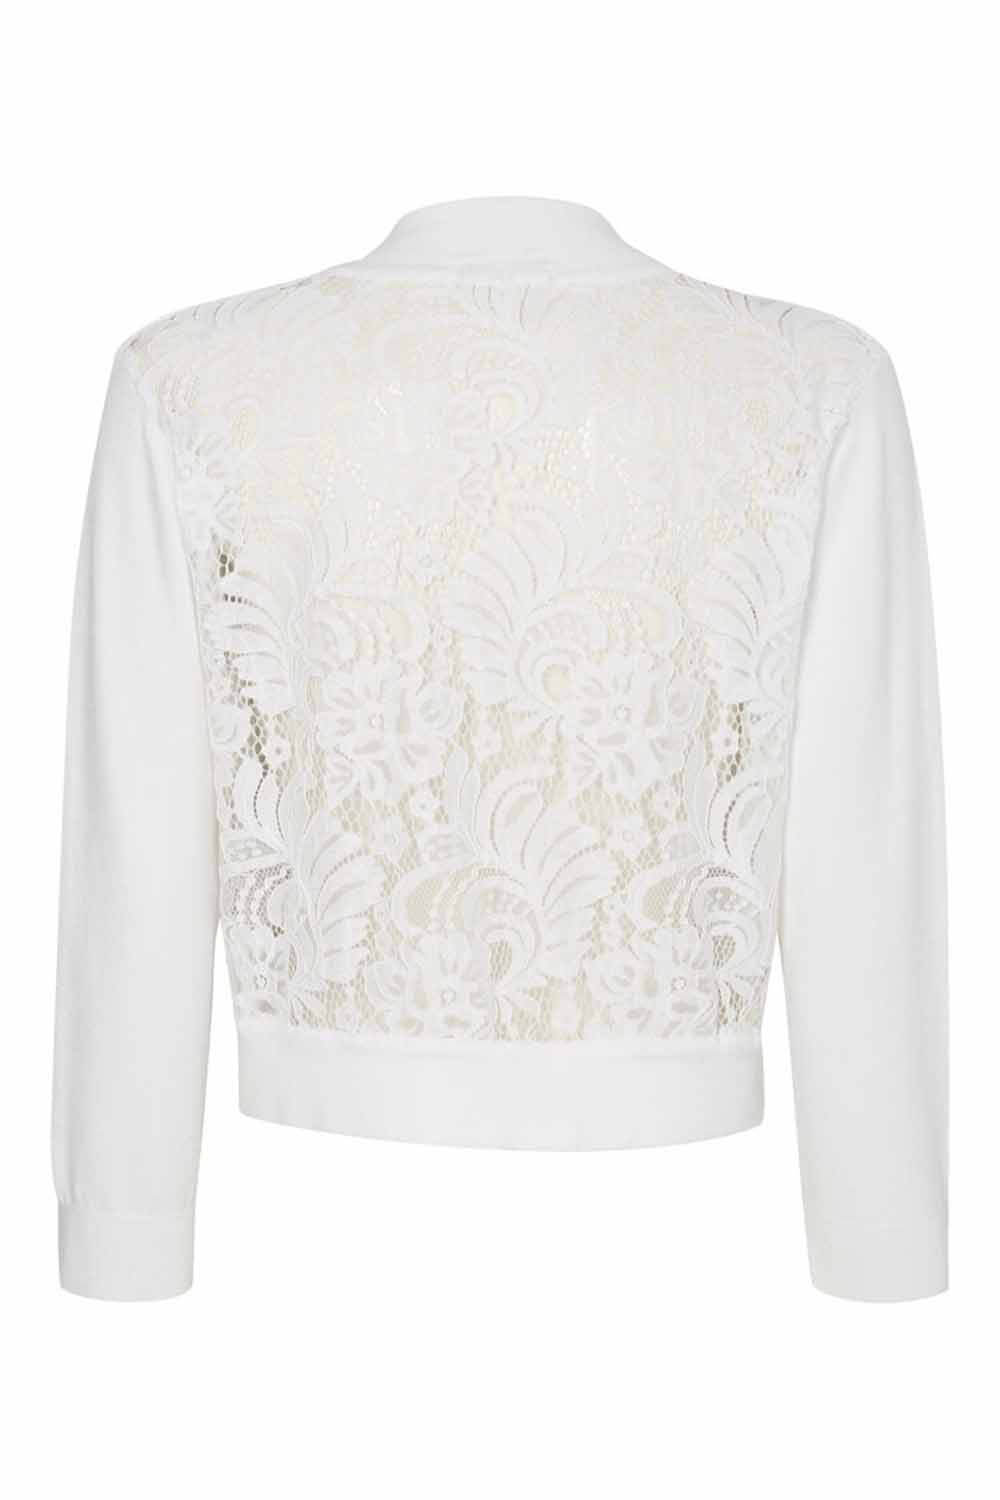 Roman-Originals-Women-039-s-White-Lace-Back-Shrug-Cardigan-Sizes-10-20 thumbnail 41